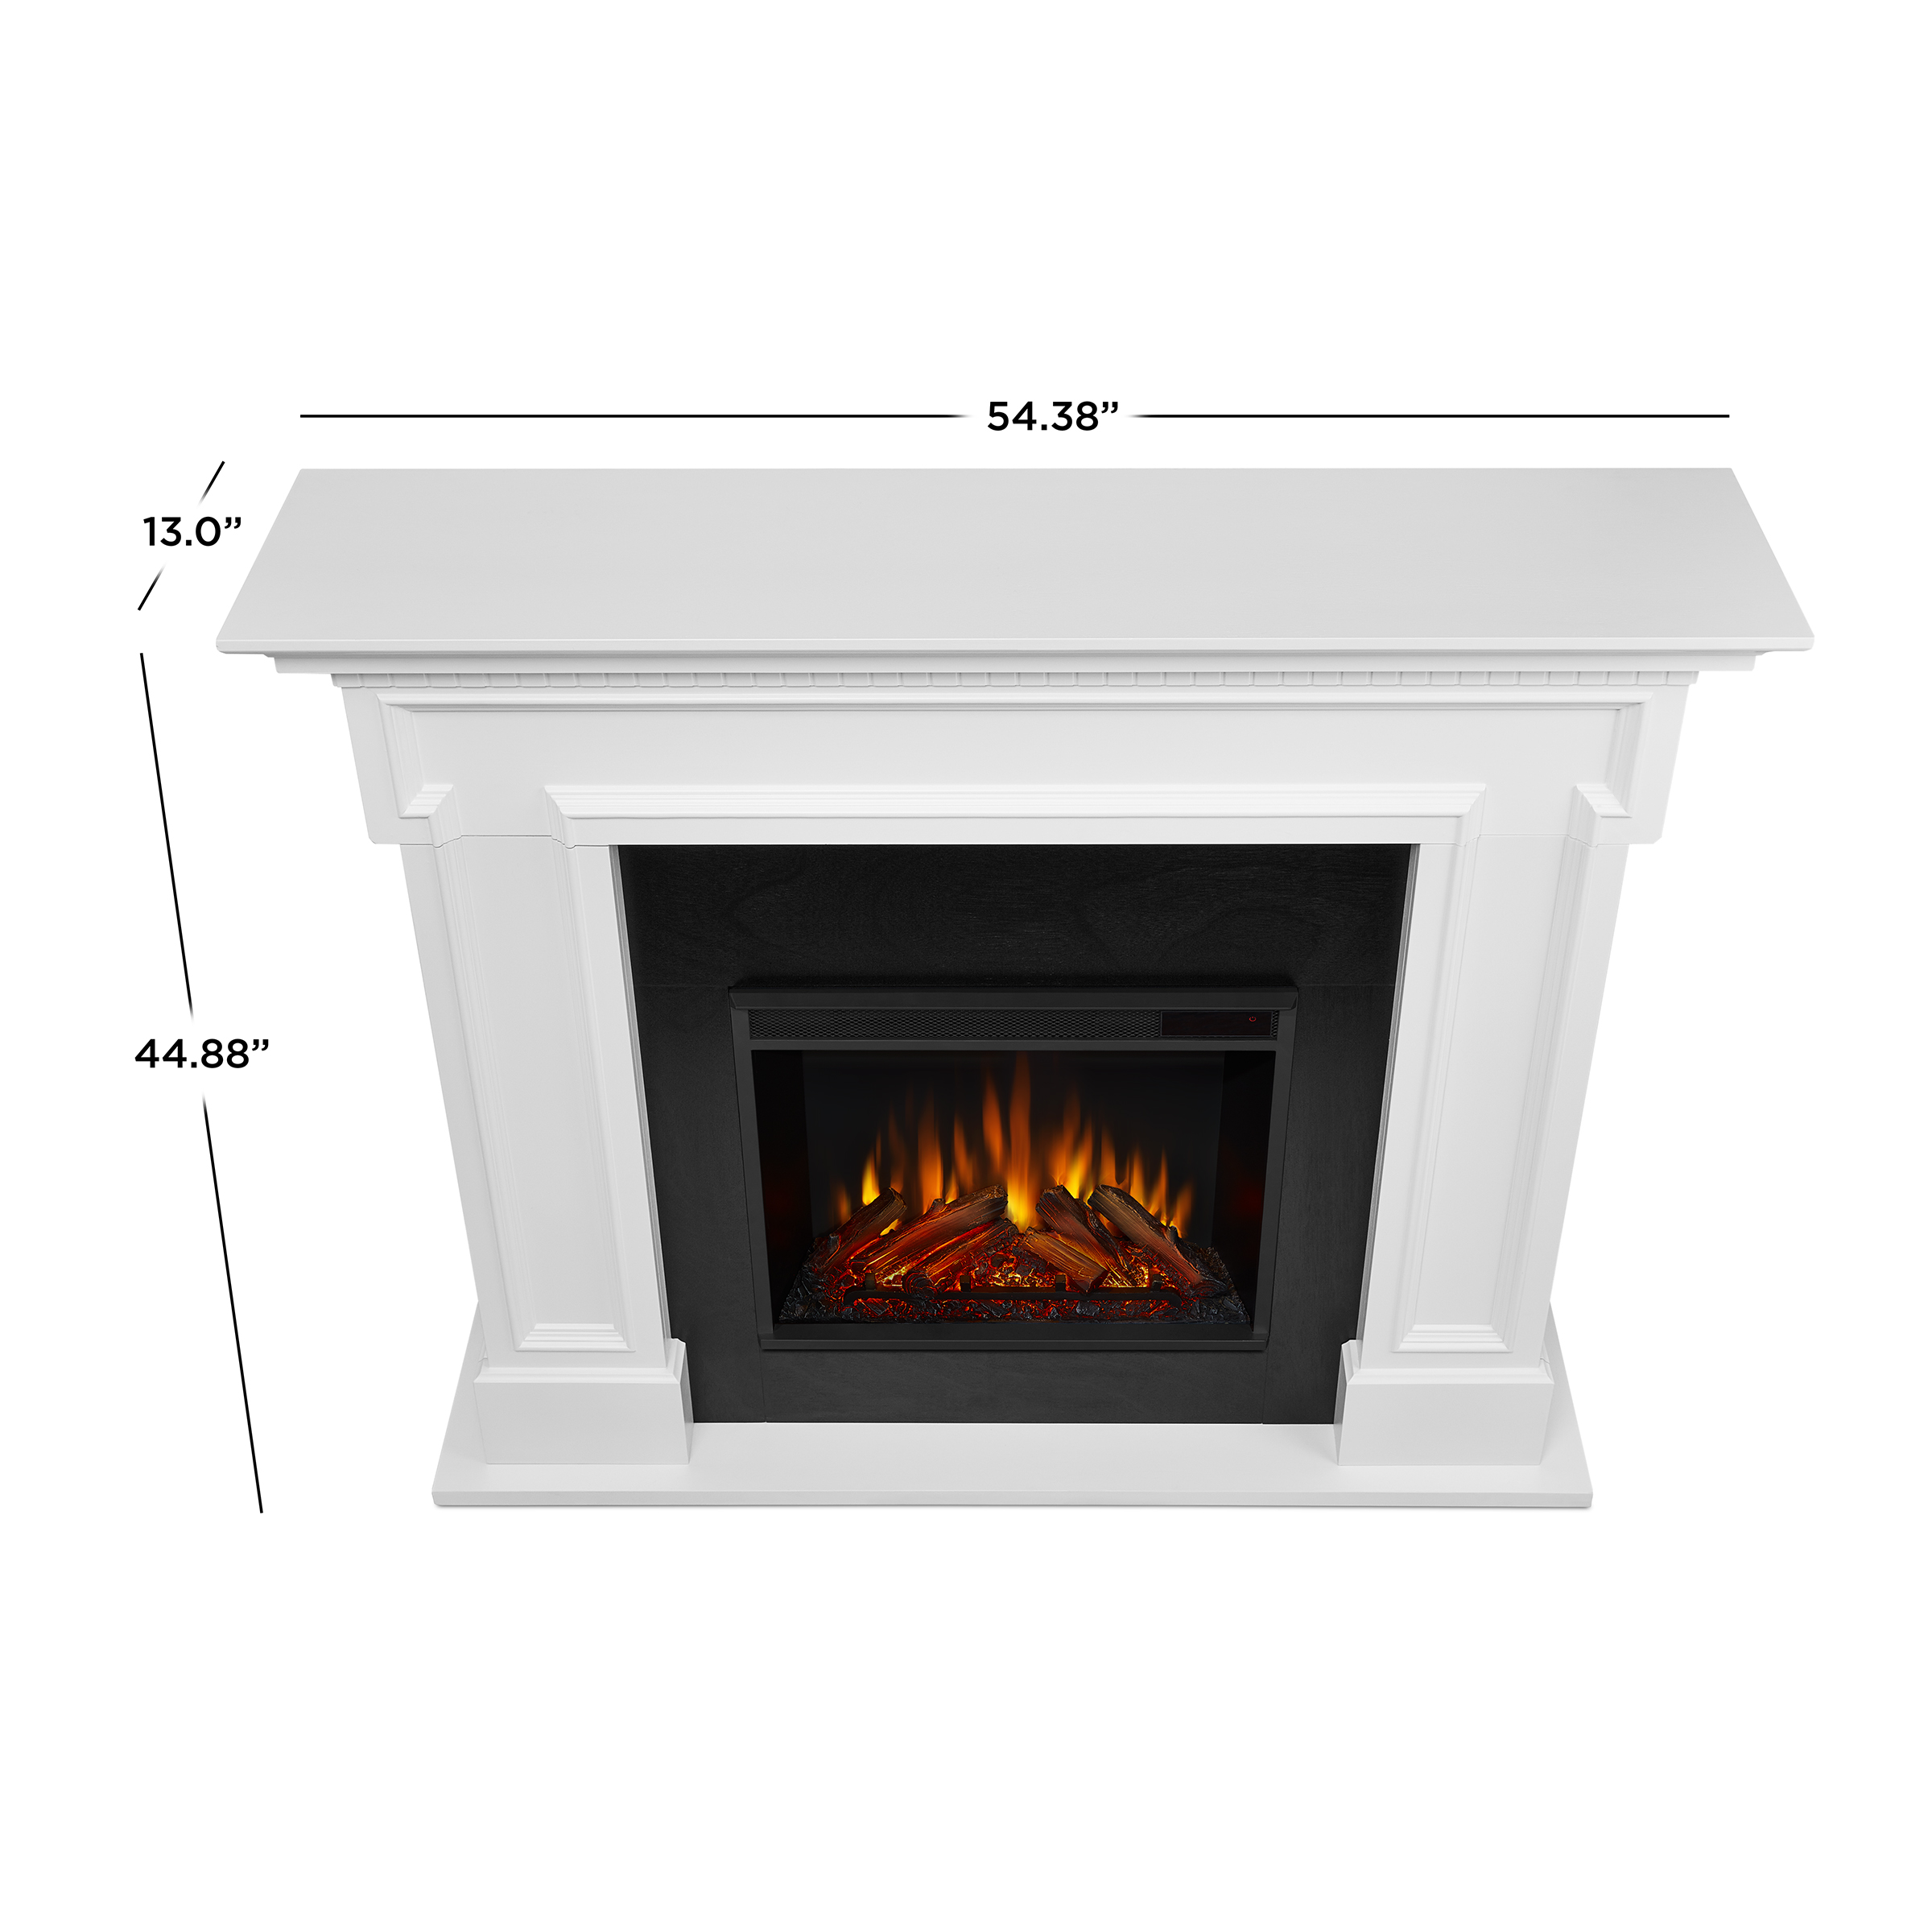 White Electric Fireplace Dimensions